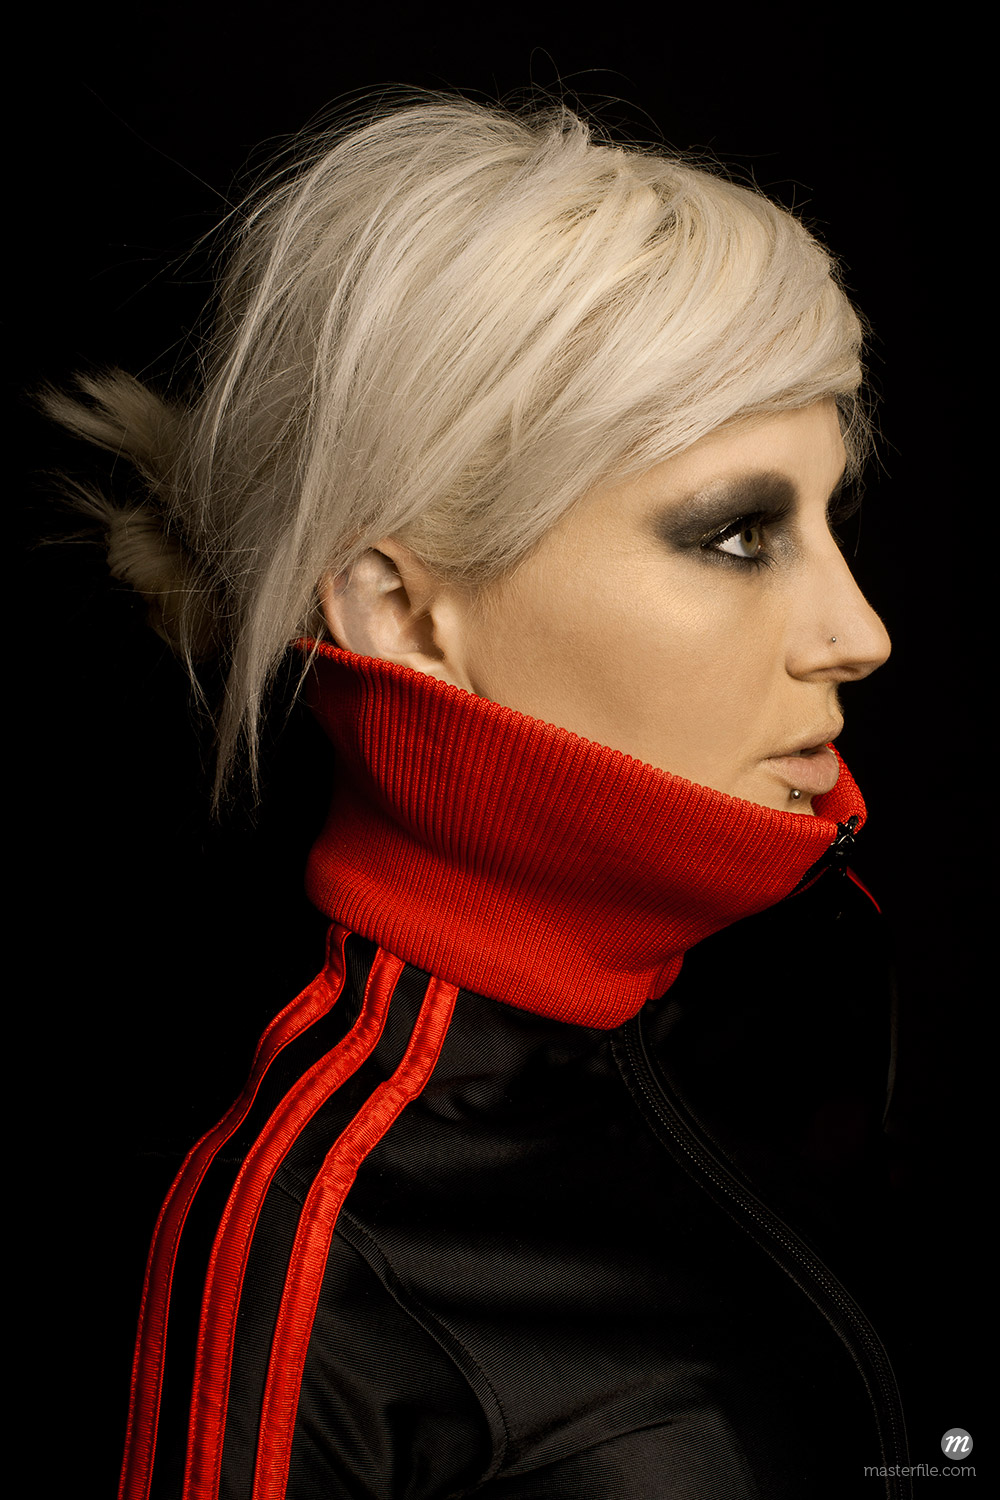 Portrait of Blond Woman Wearing Shirt with Red Collar © Shelley Smith / Masterfile